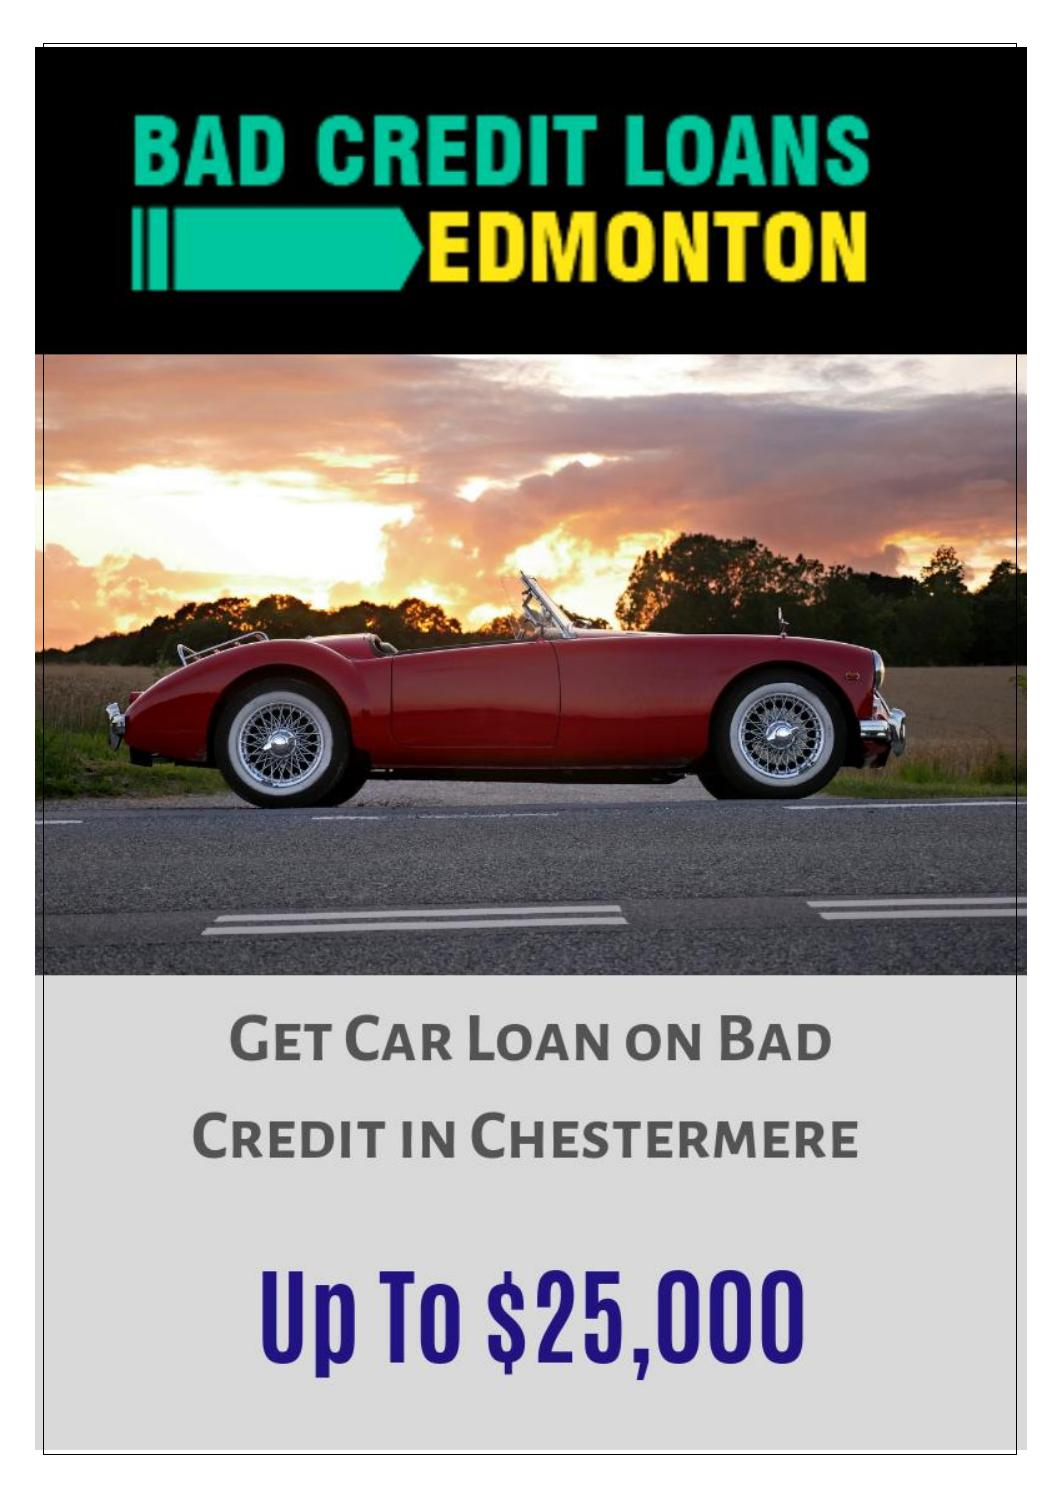 Get A Car With Bad Credit >> Get Car Loan On Bad Credit In Chestermere By Bad Credit